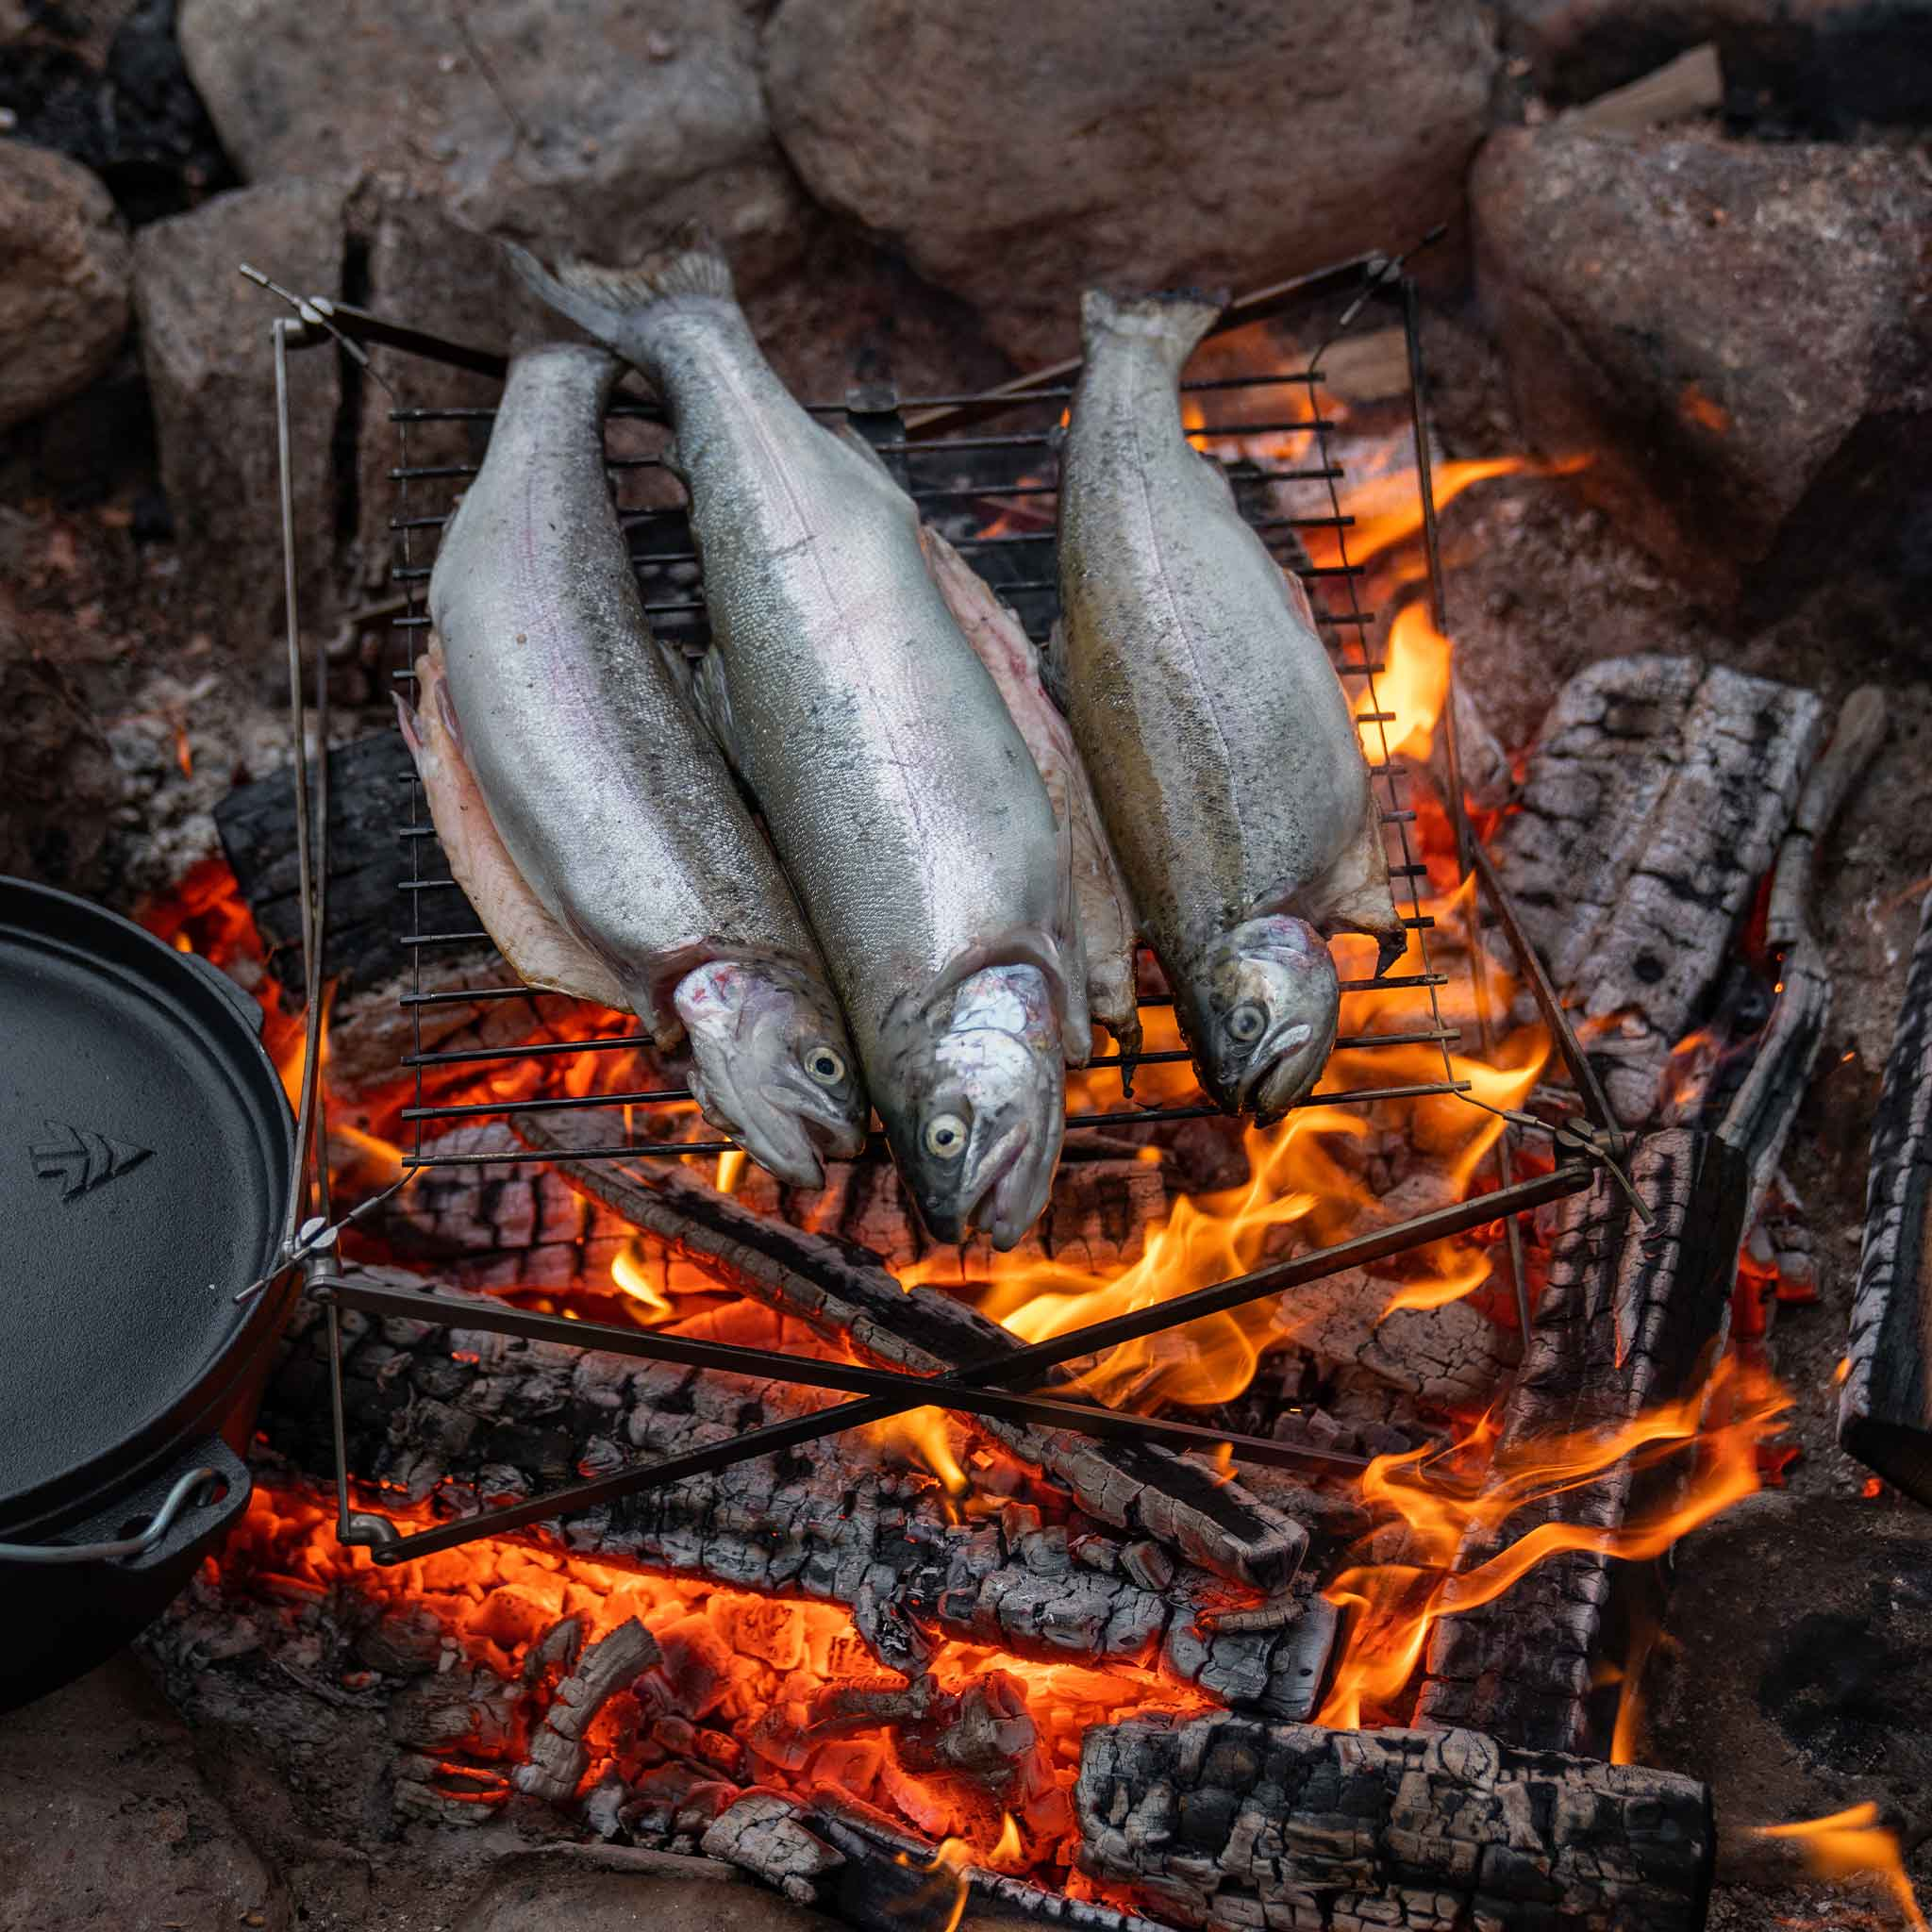 Cooking salmon campfire grill